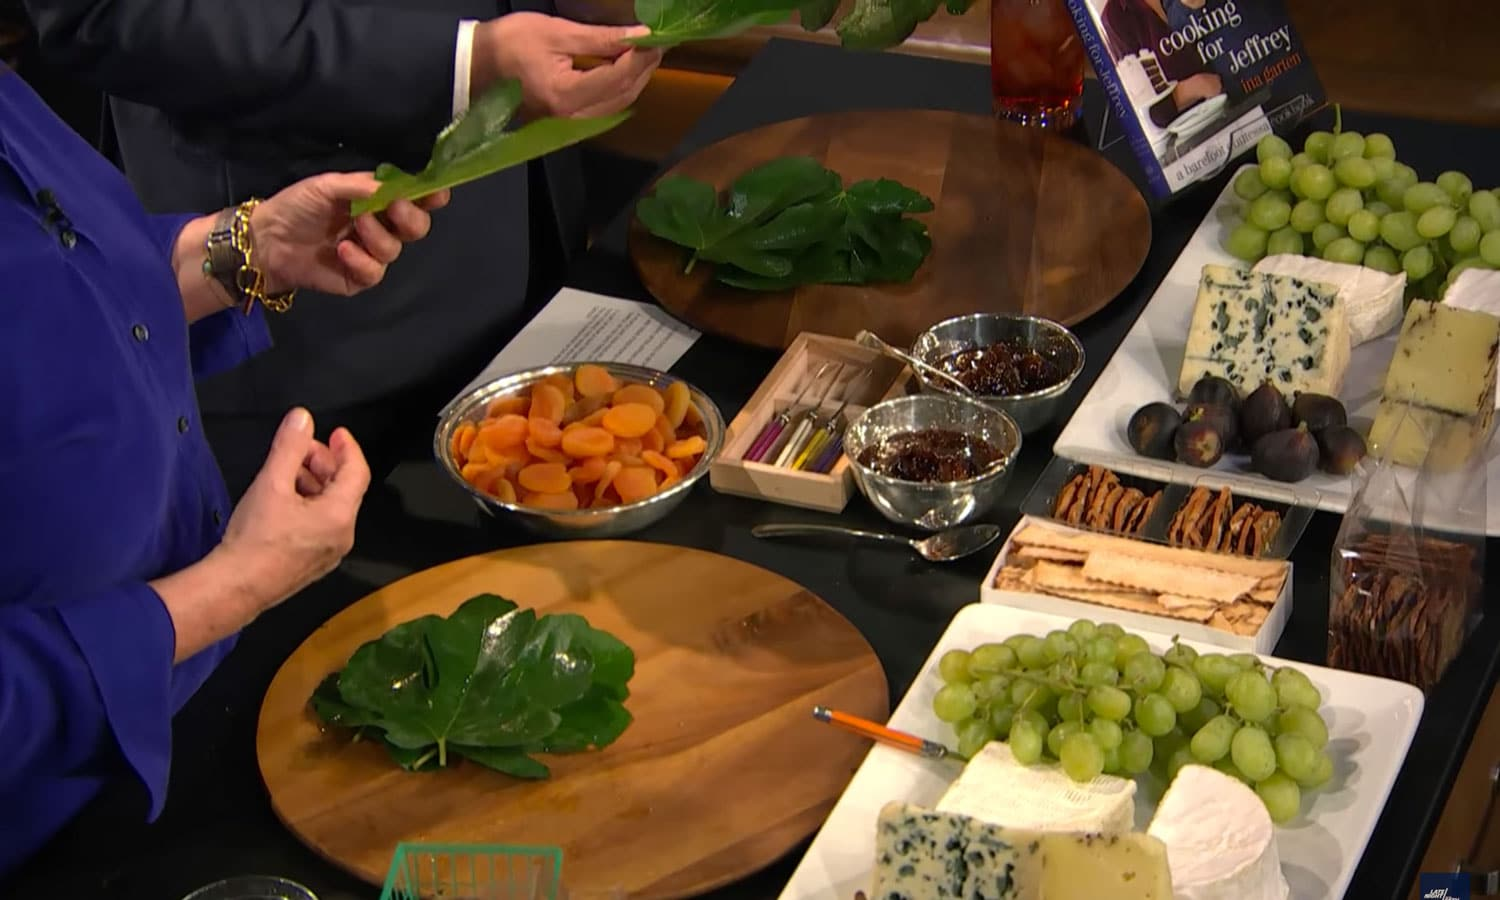 & Ina Garten Puts Us All To Shame With Her Cheese Plate Skills